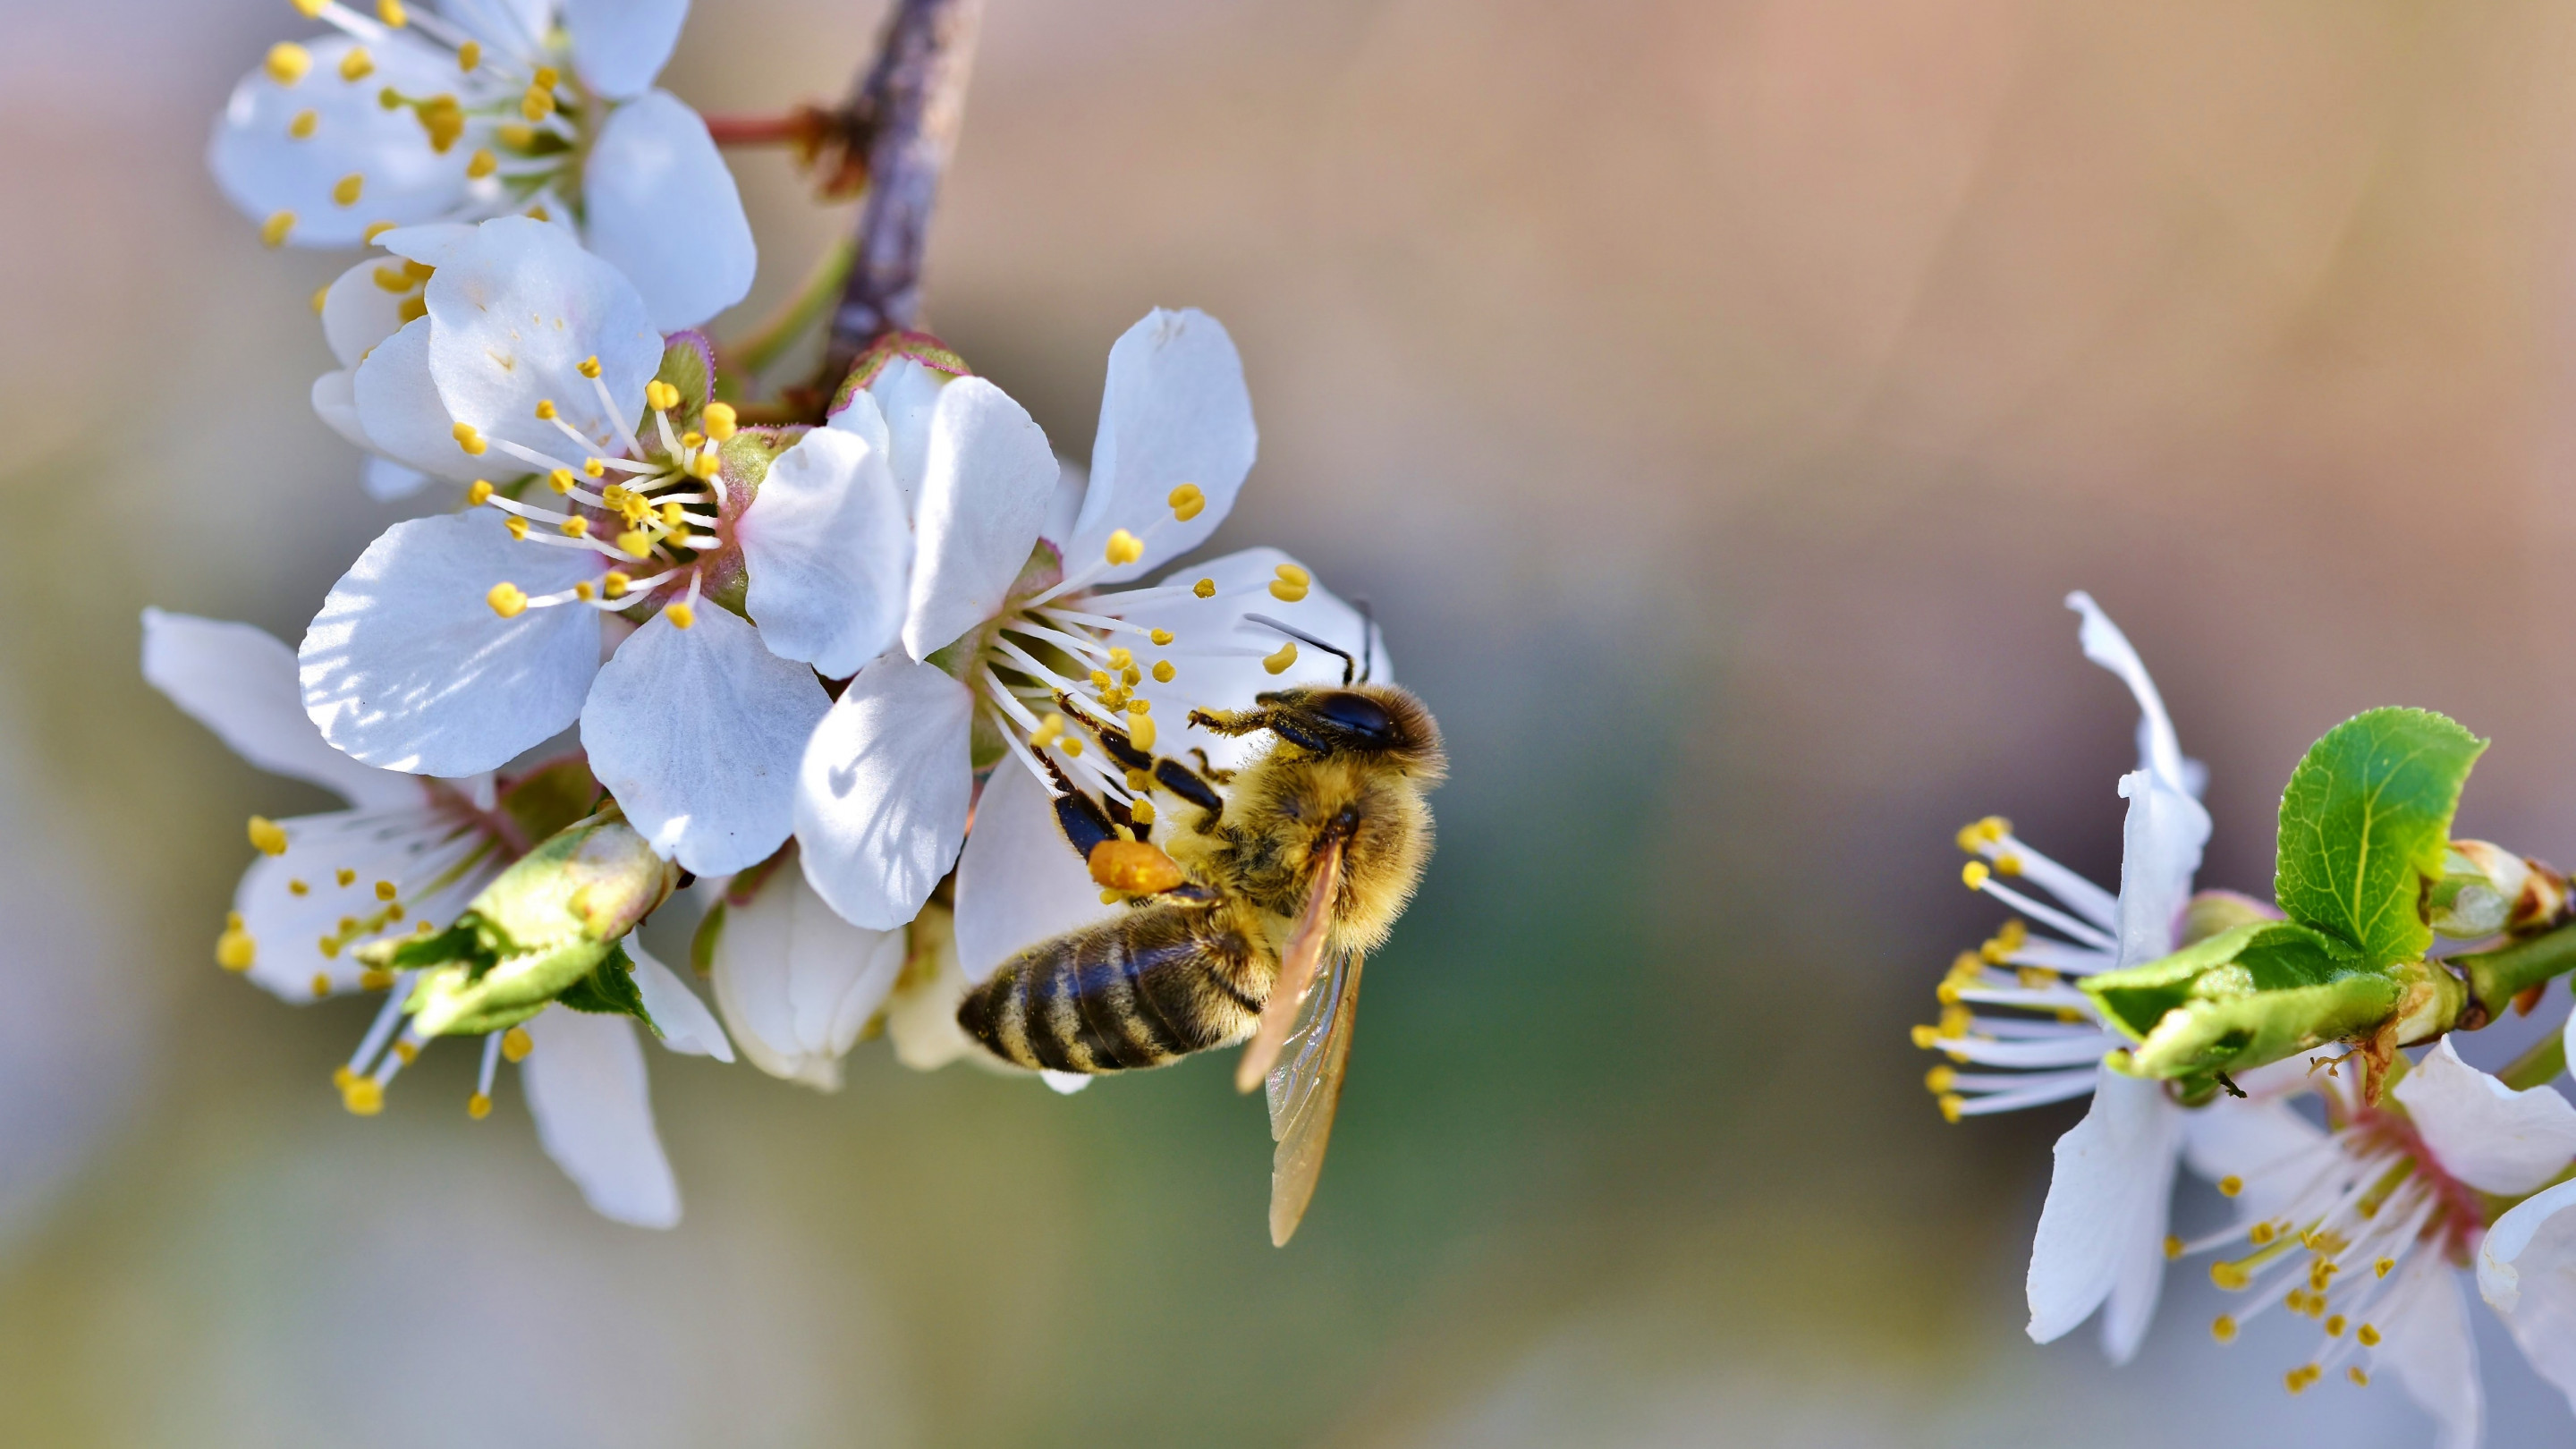 Spring, bee, blossoms, flower wallpaper 2880x1620